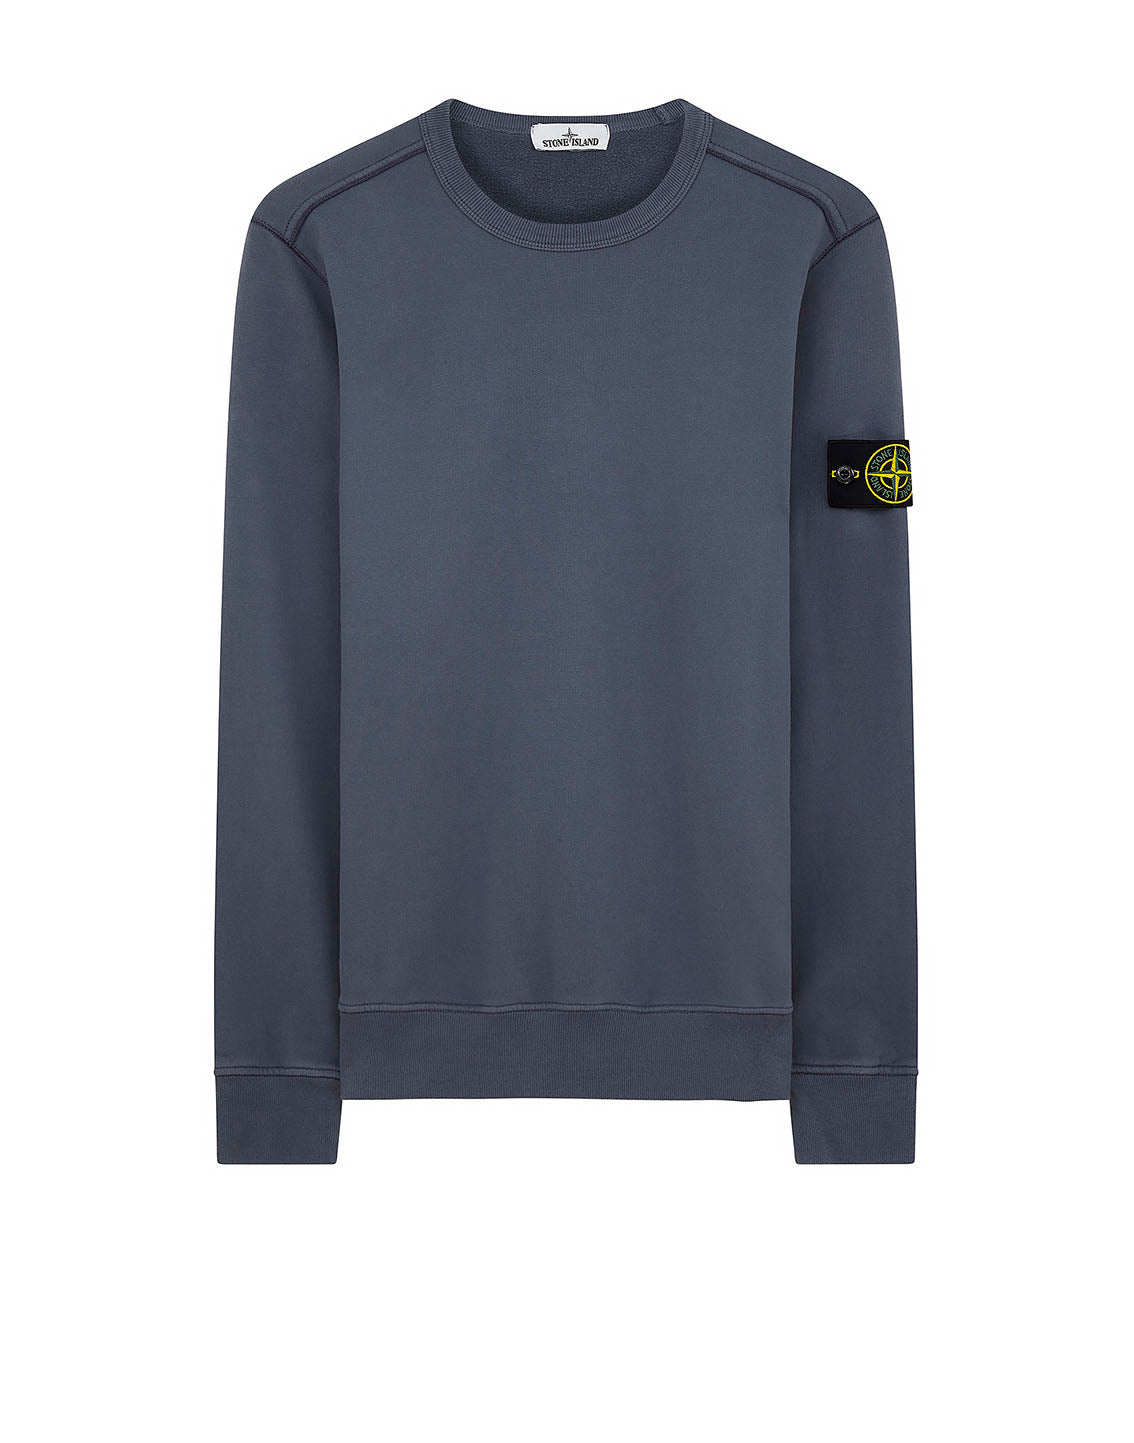 62720 Crewneck Sweatshirt in Dark Blue